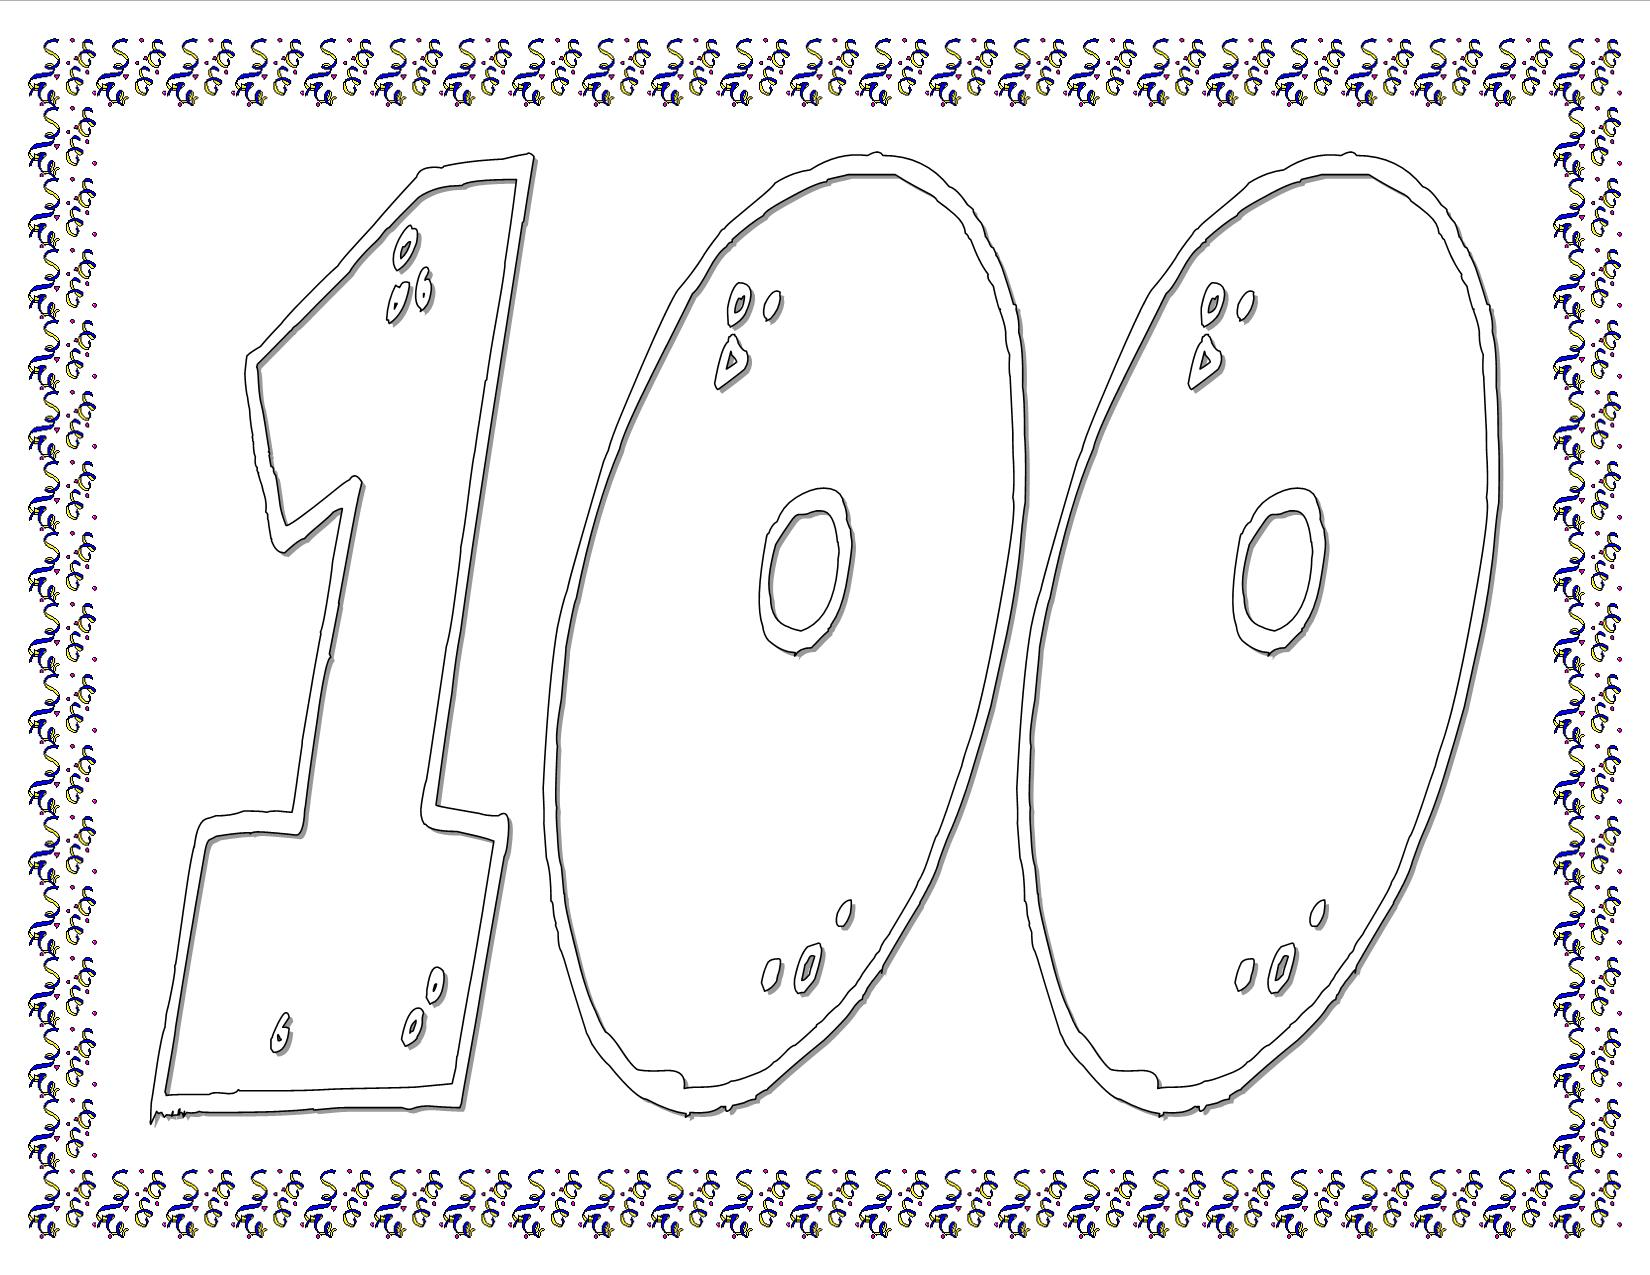 100 days of school coloring pages - 8 best images of 100th day of school free printables